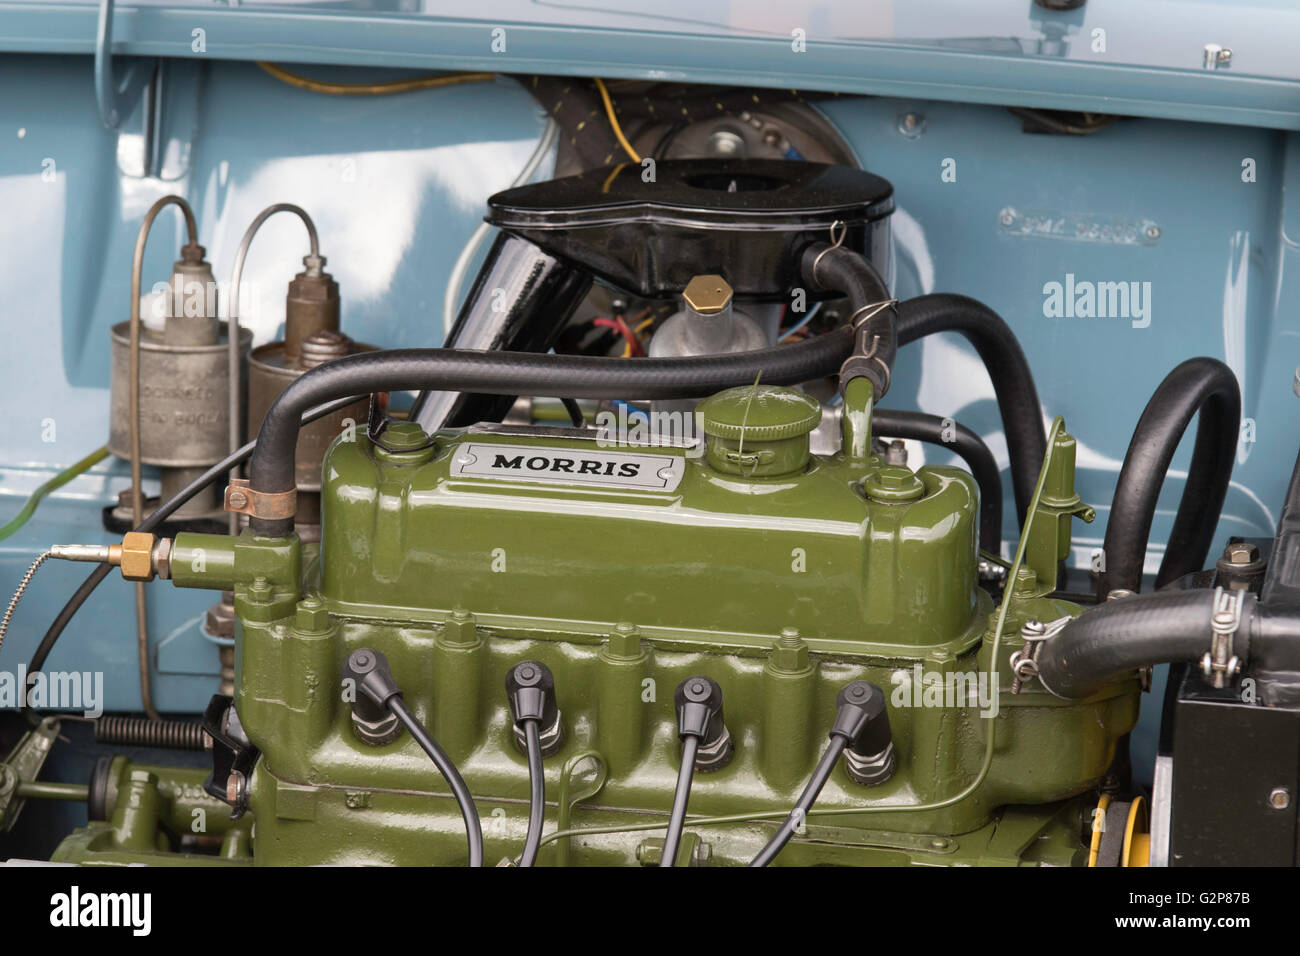 Early 1960s BMC Mini, Morris petrol engine, England, UK - Stock Image